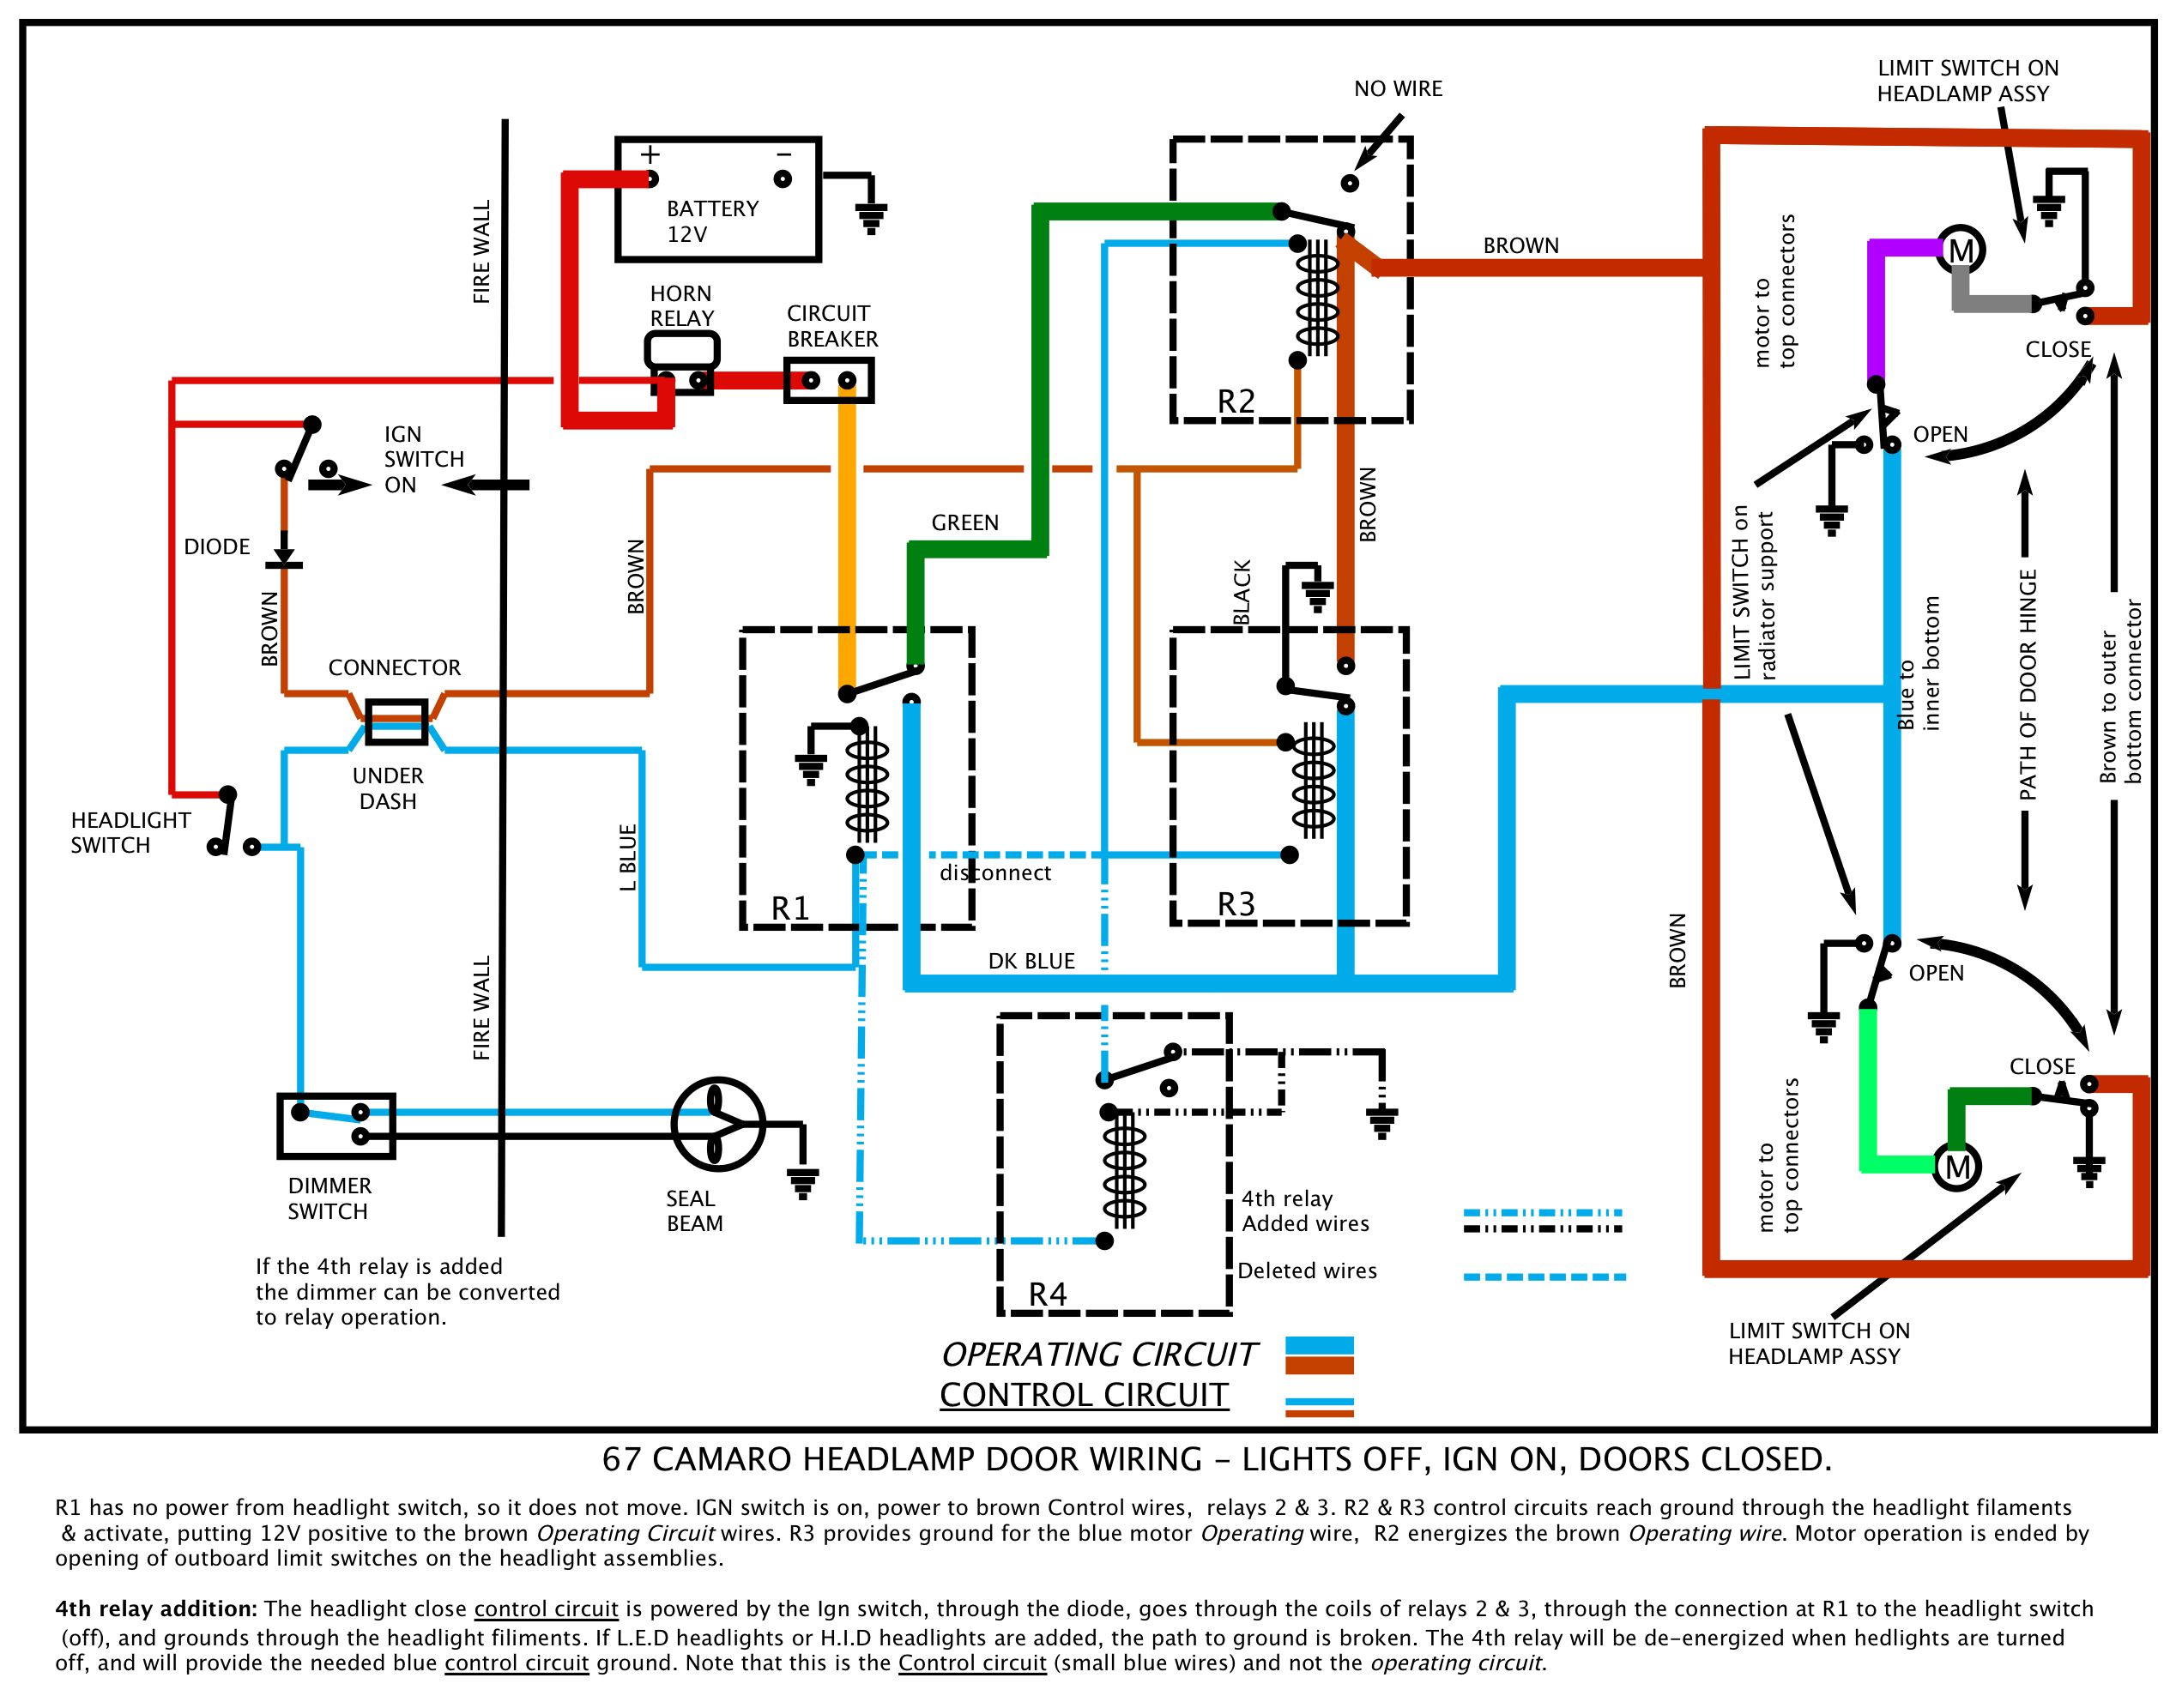 1967 Chevrolet Camaro Wiring Diagram